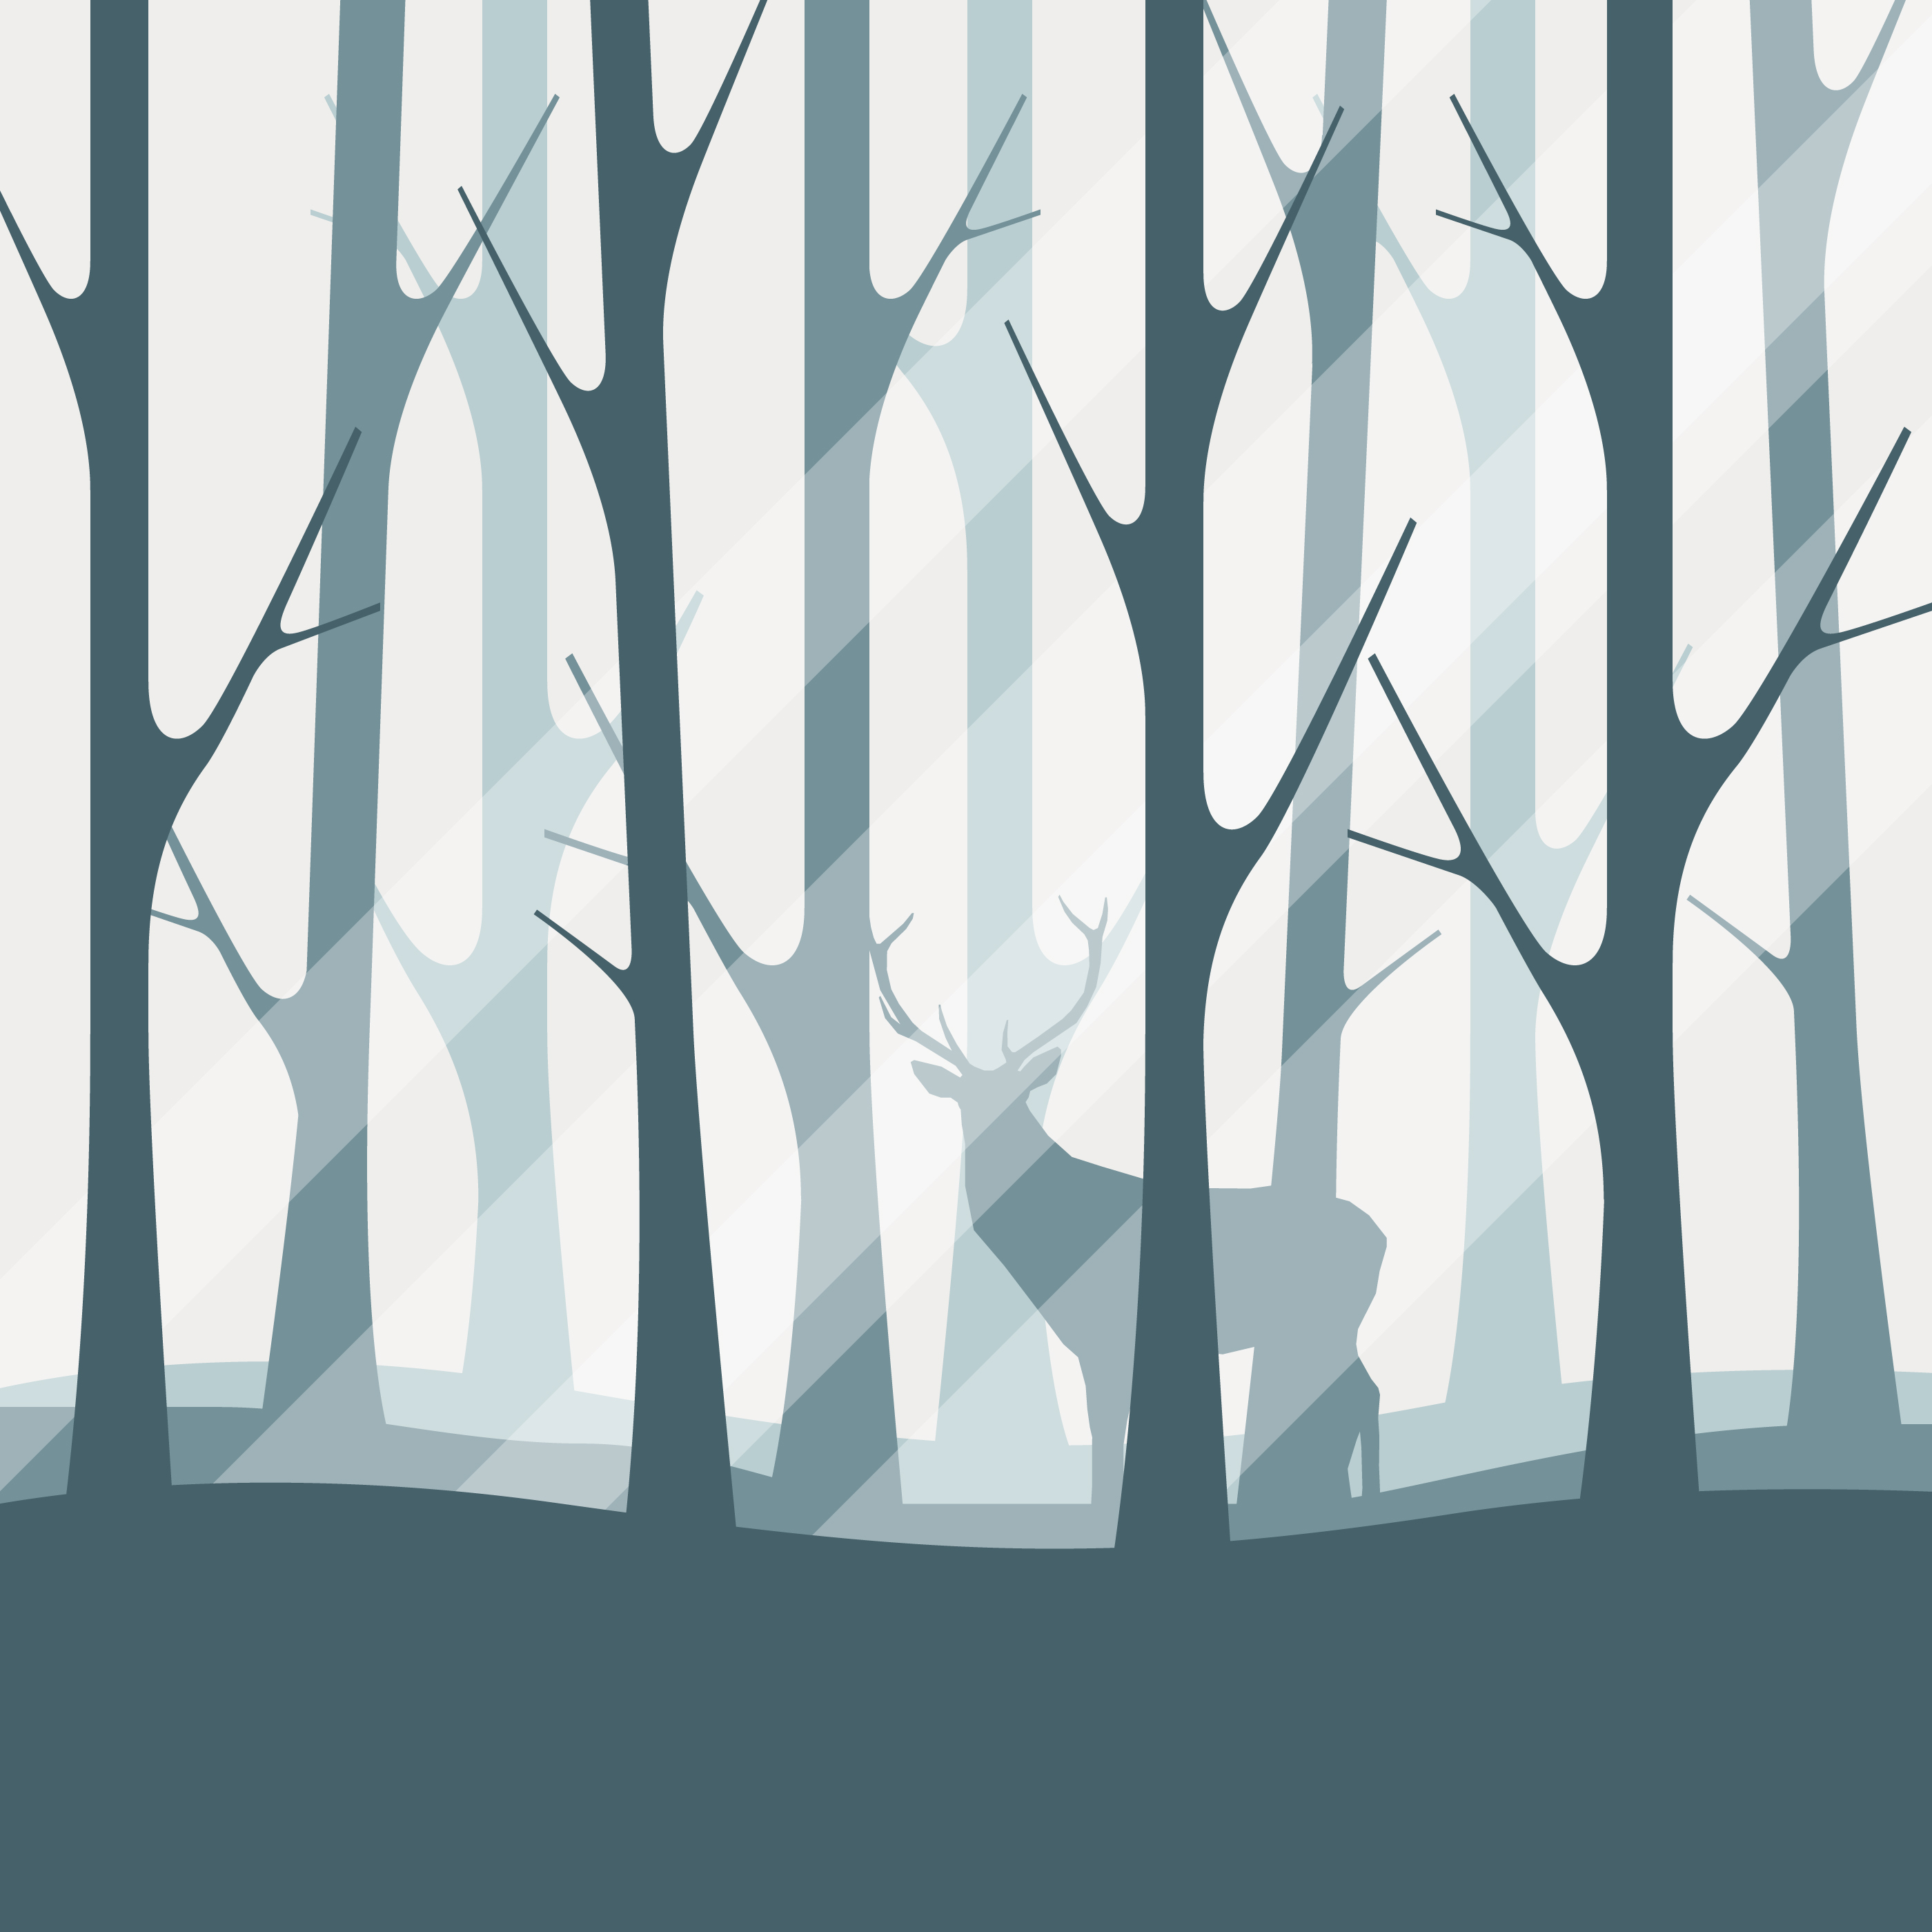 Deciduous Forest Silhouette Illustration Download Free